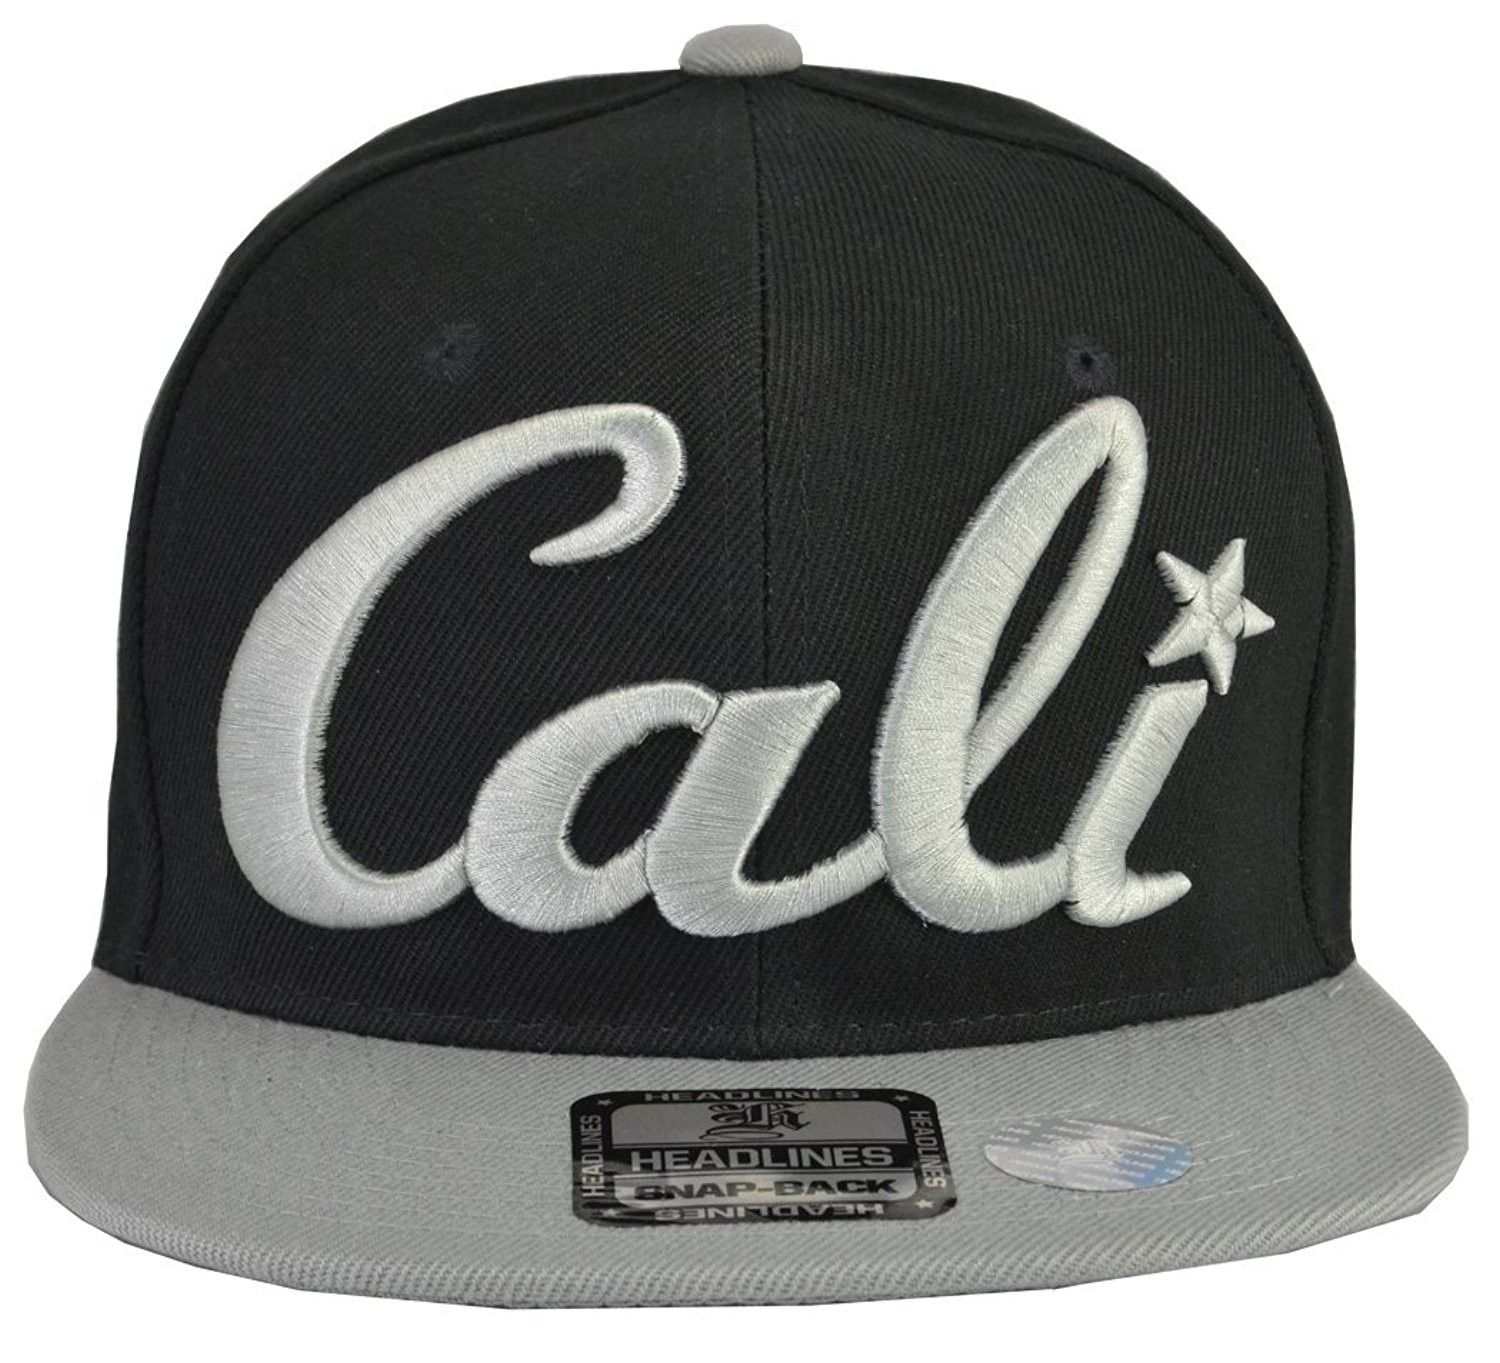 282c8878fba Cali Hats - California Embroidered Cap (7 Styles  amp  Colors) - Cali Black